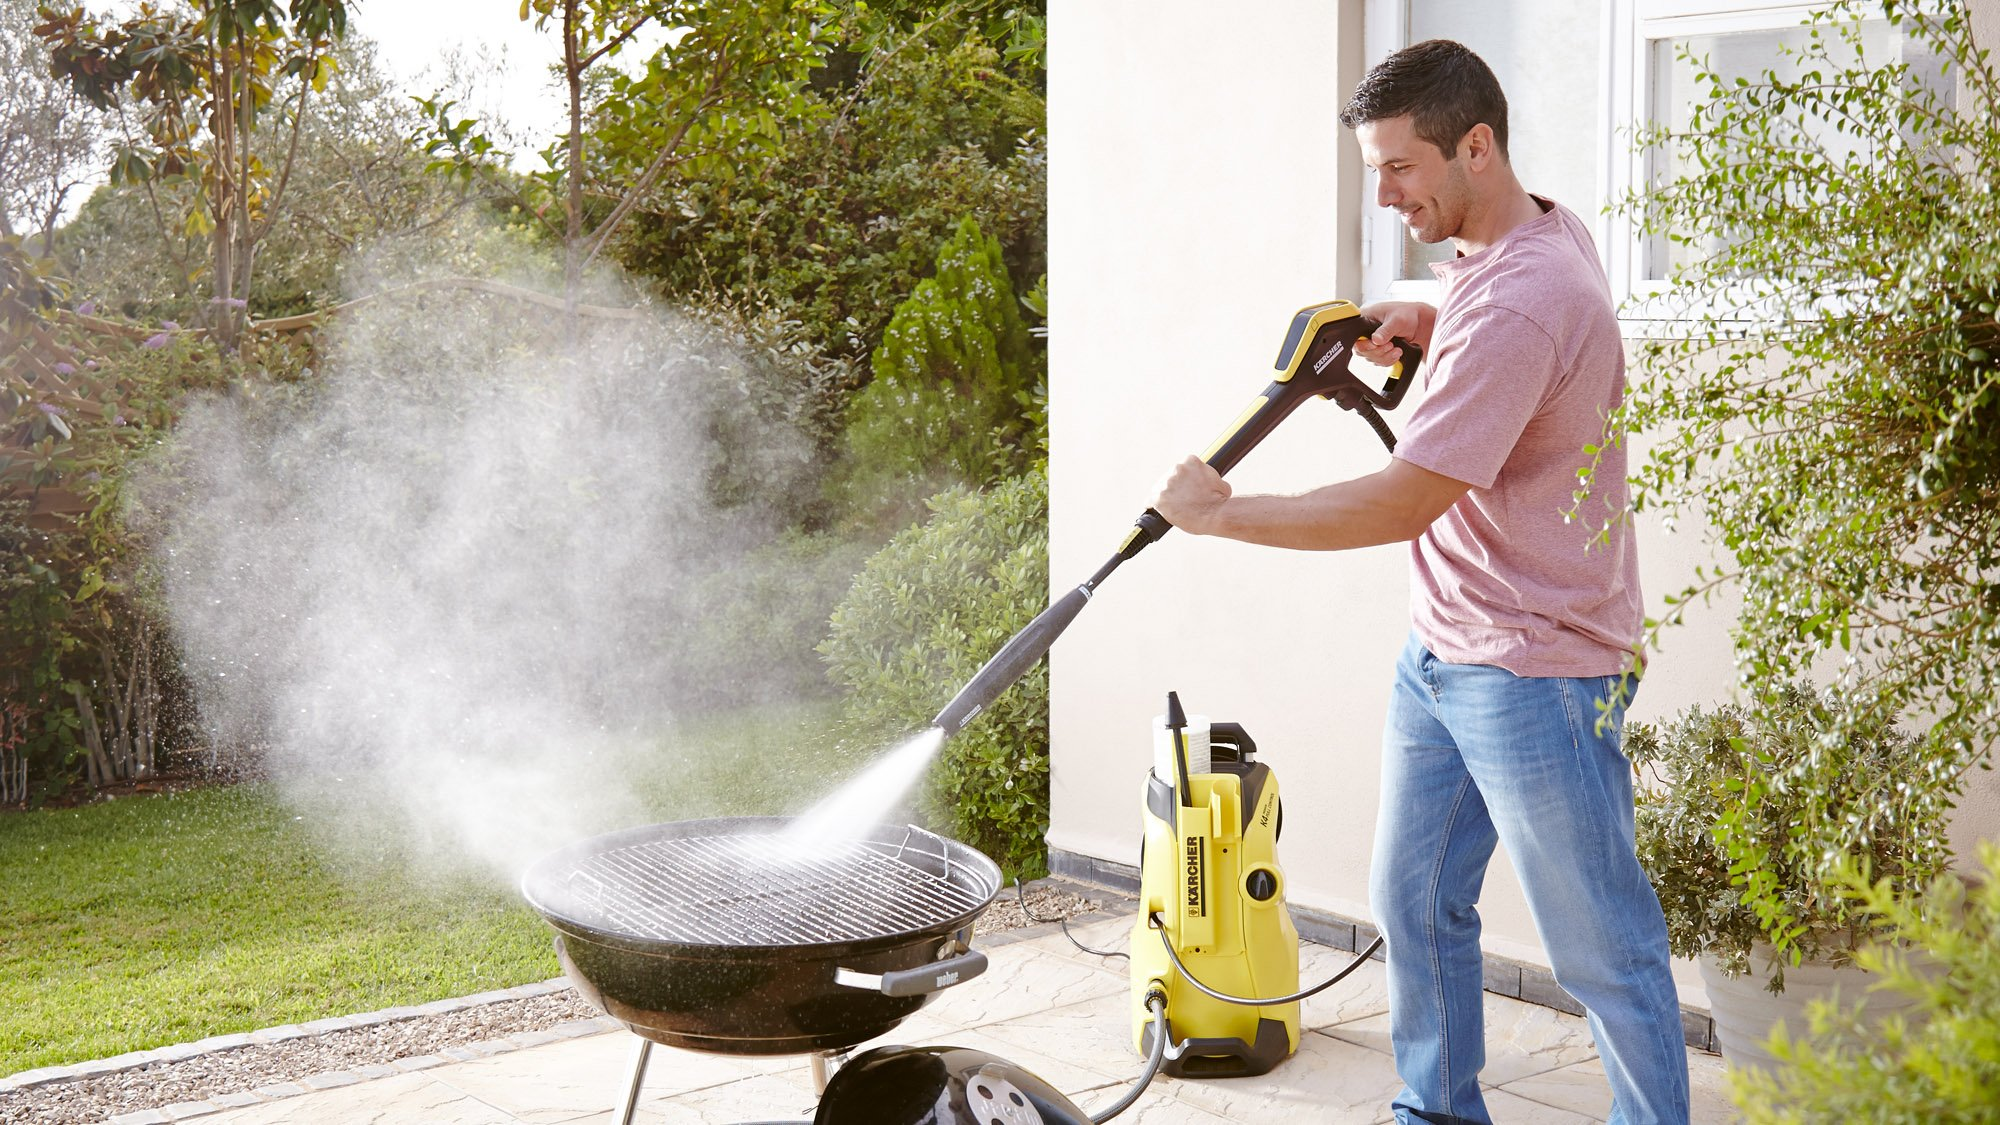 Portable High Pressure Washer Water High Power Jet Wash Garden Cleaning Tool